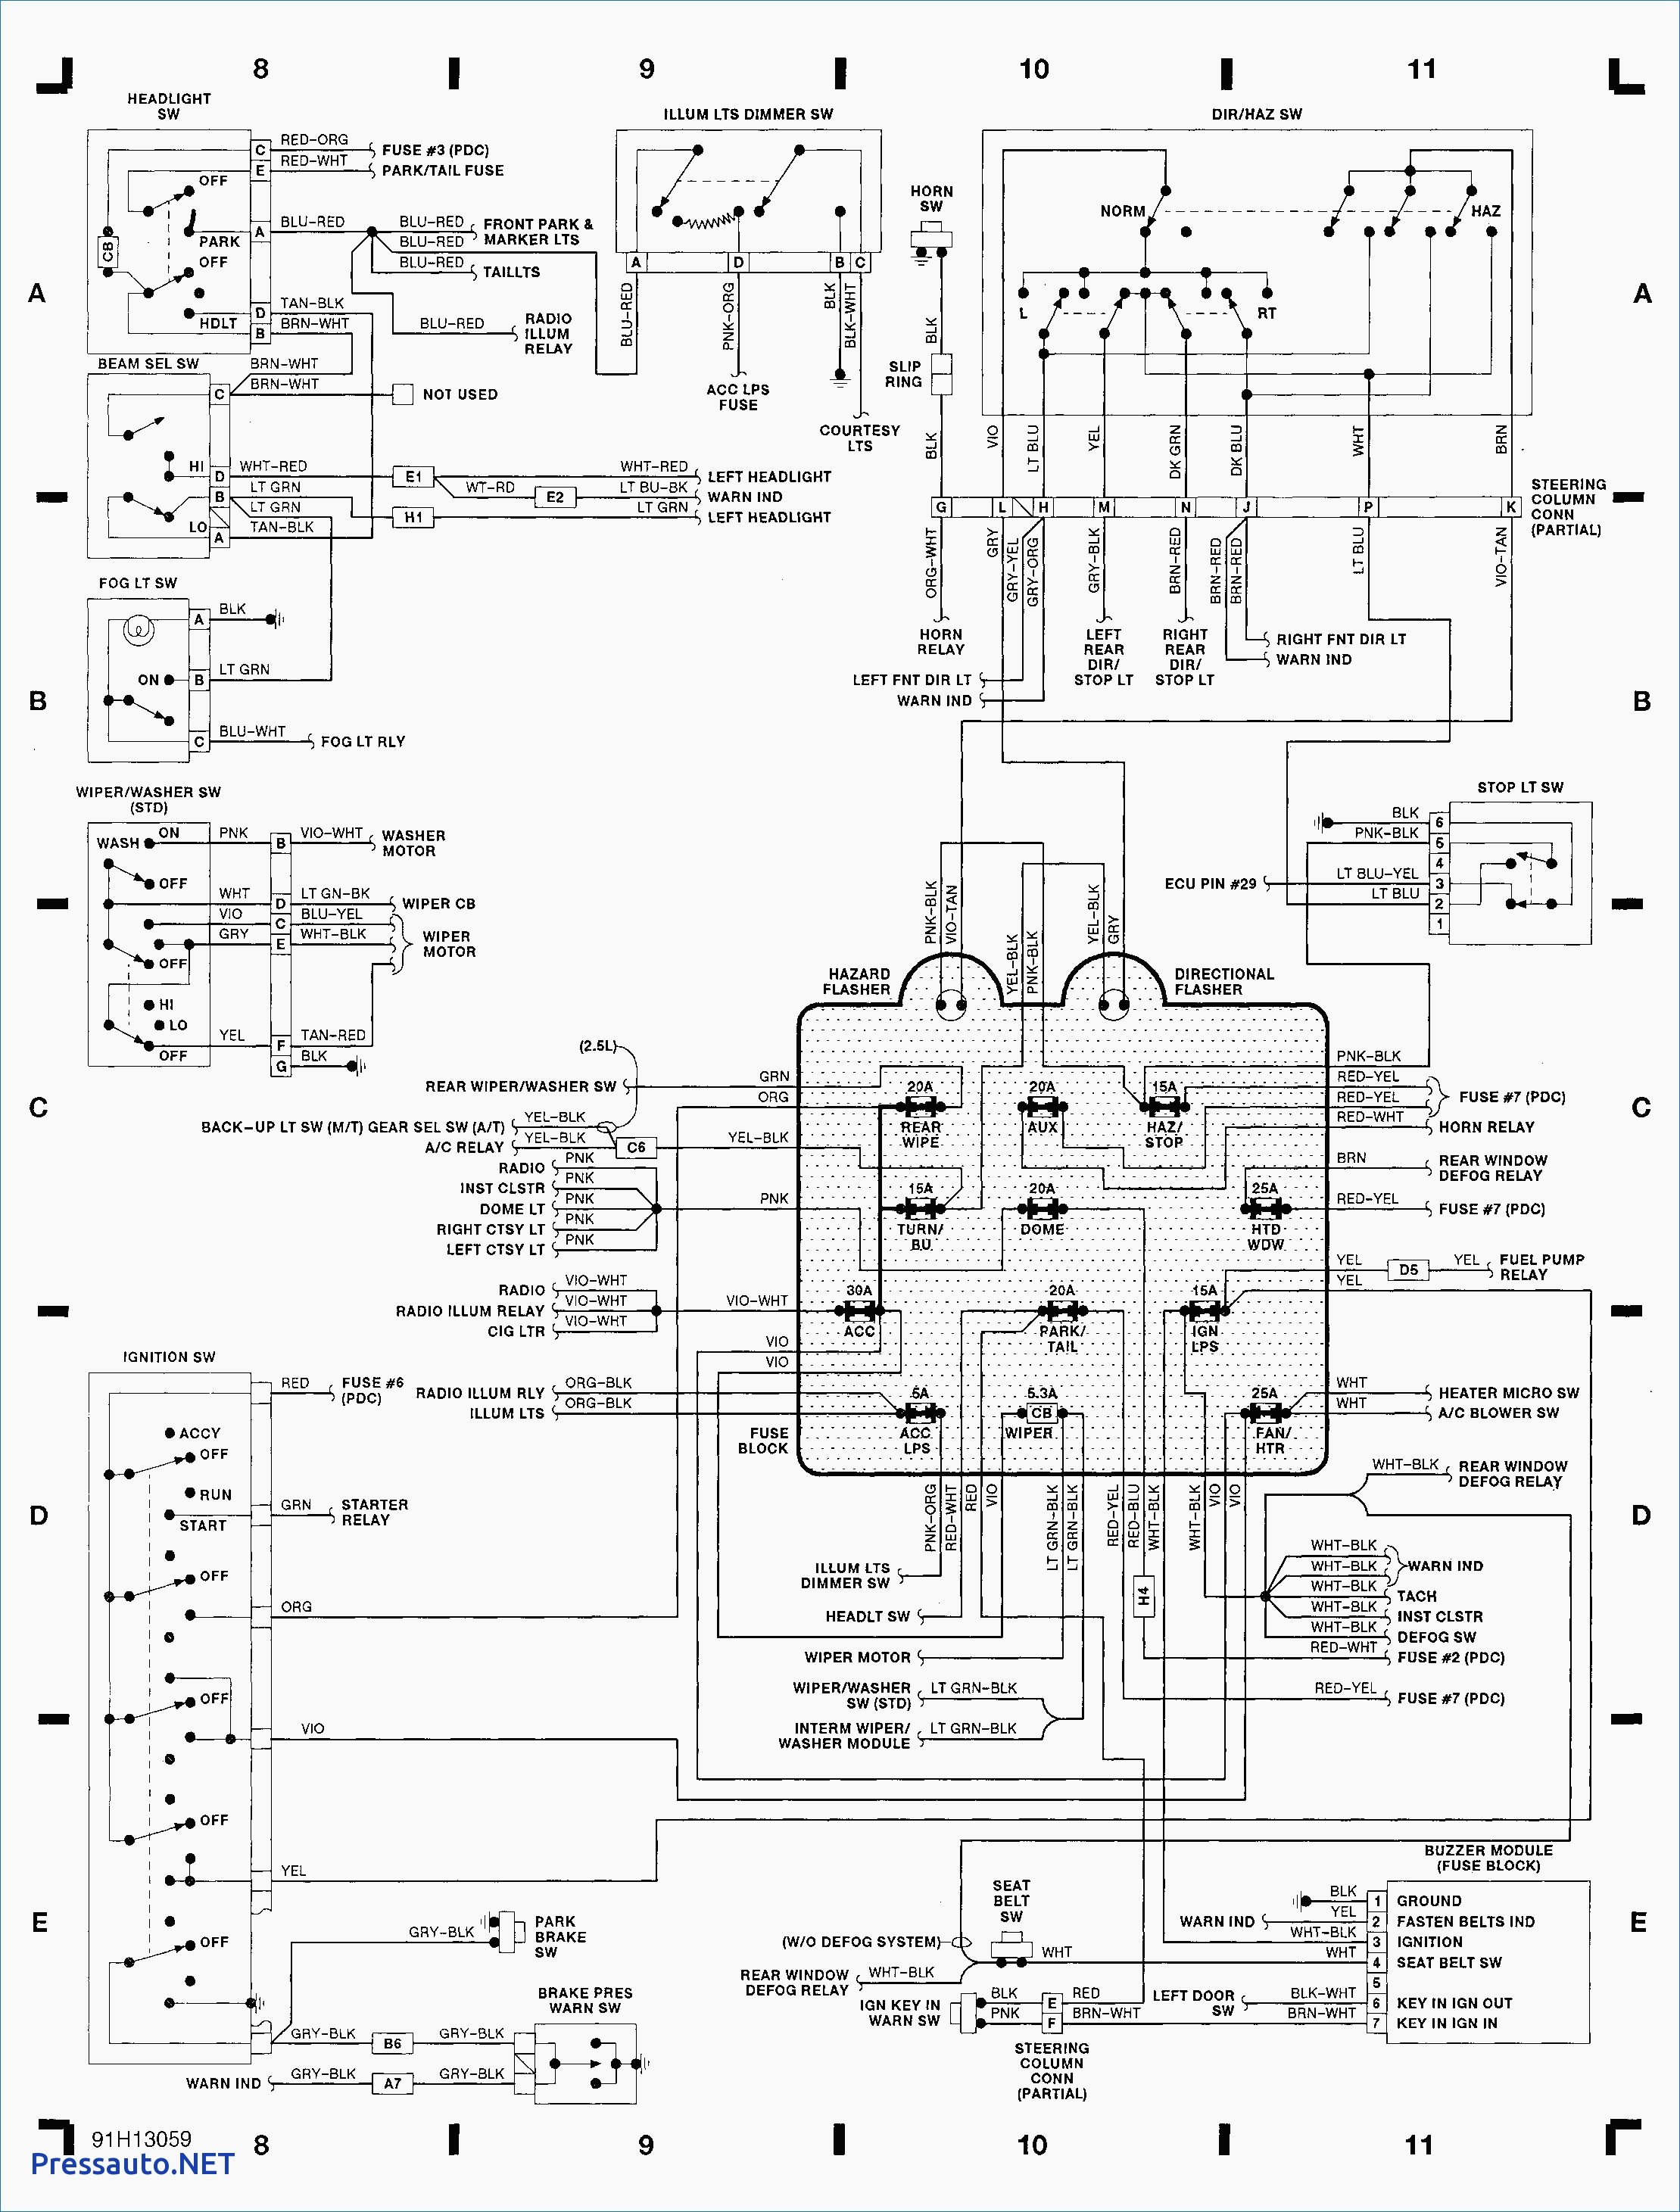 Mercedes Vito Central Locking Wiring Diagram from i2.wp.com